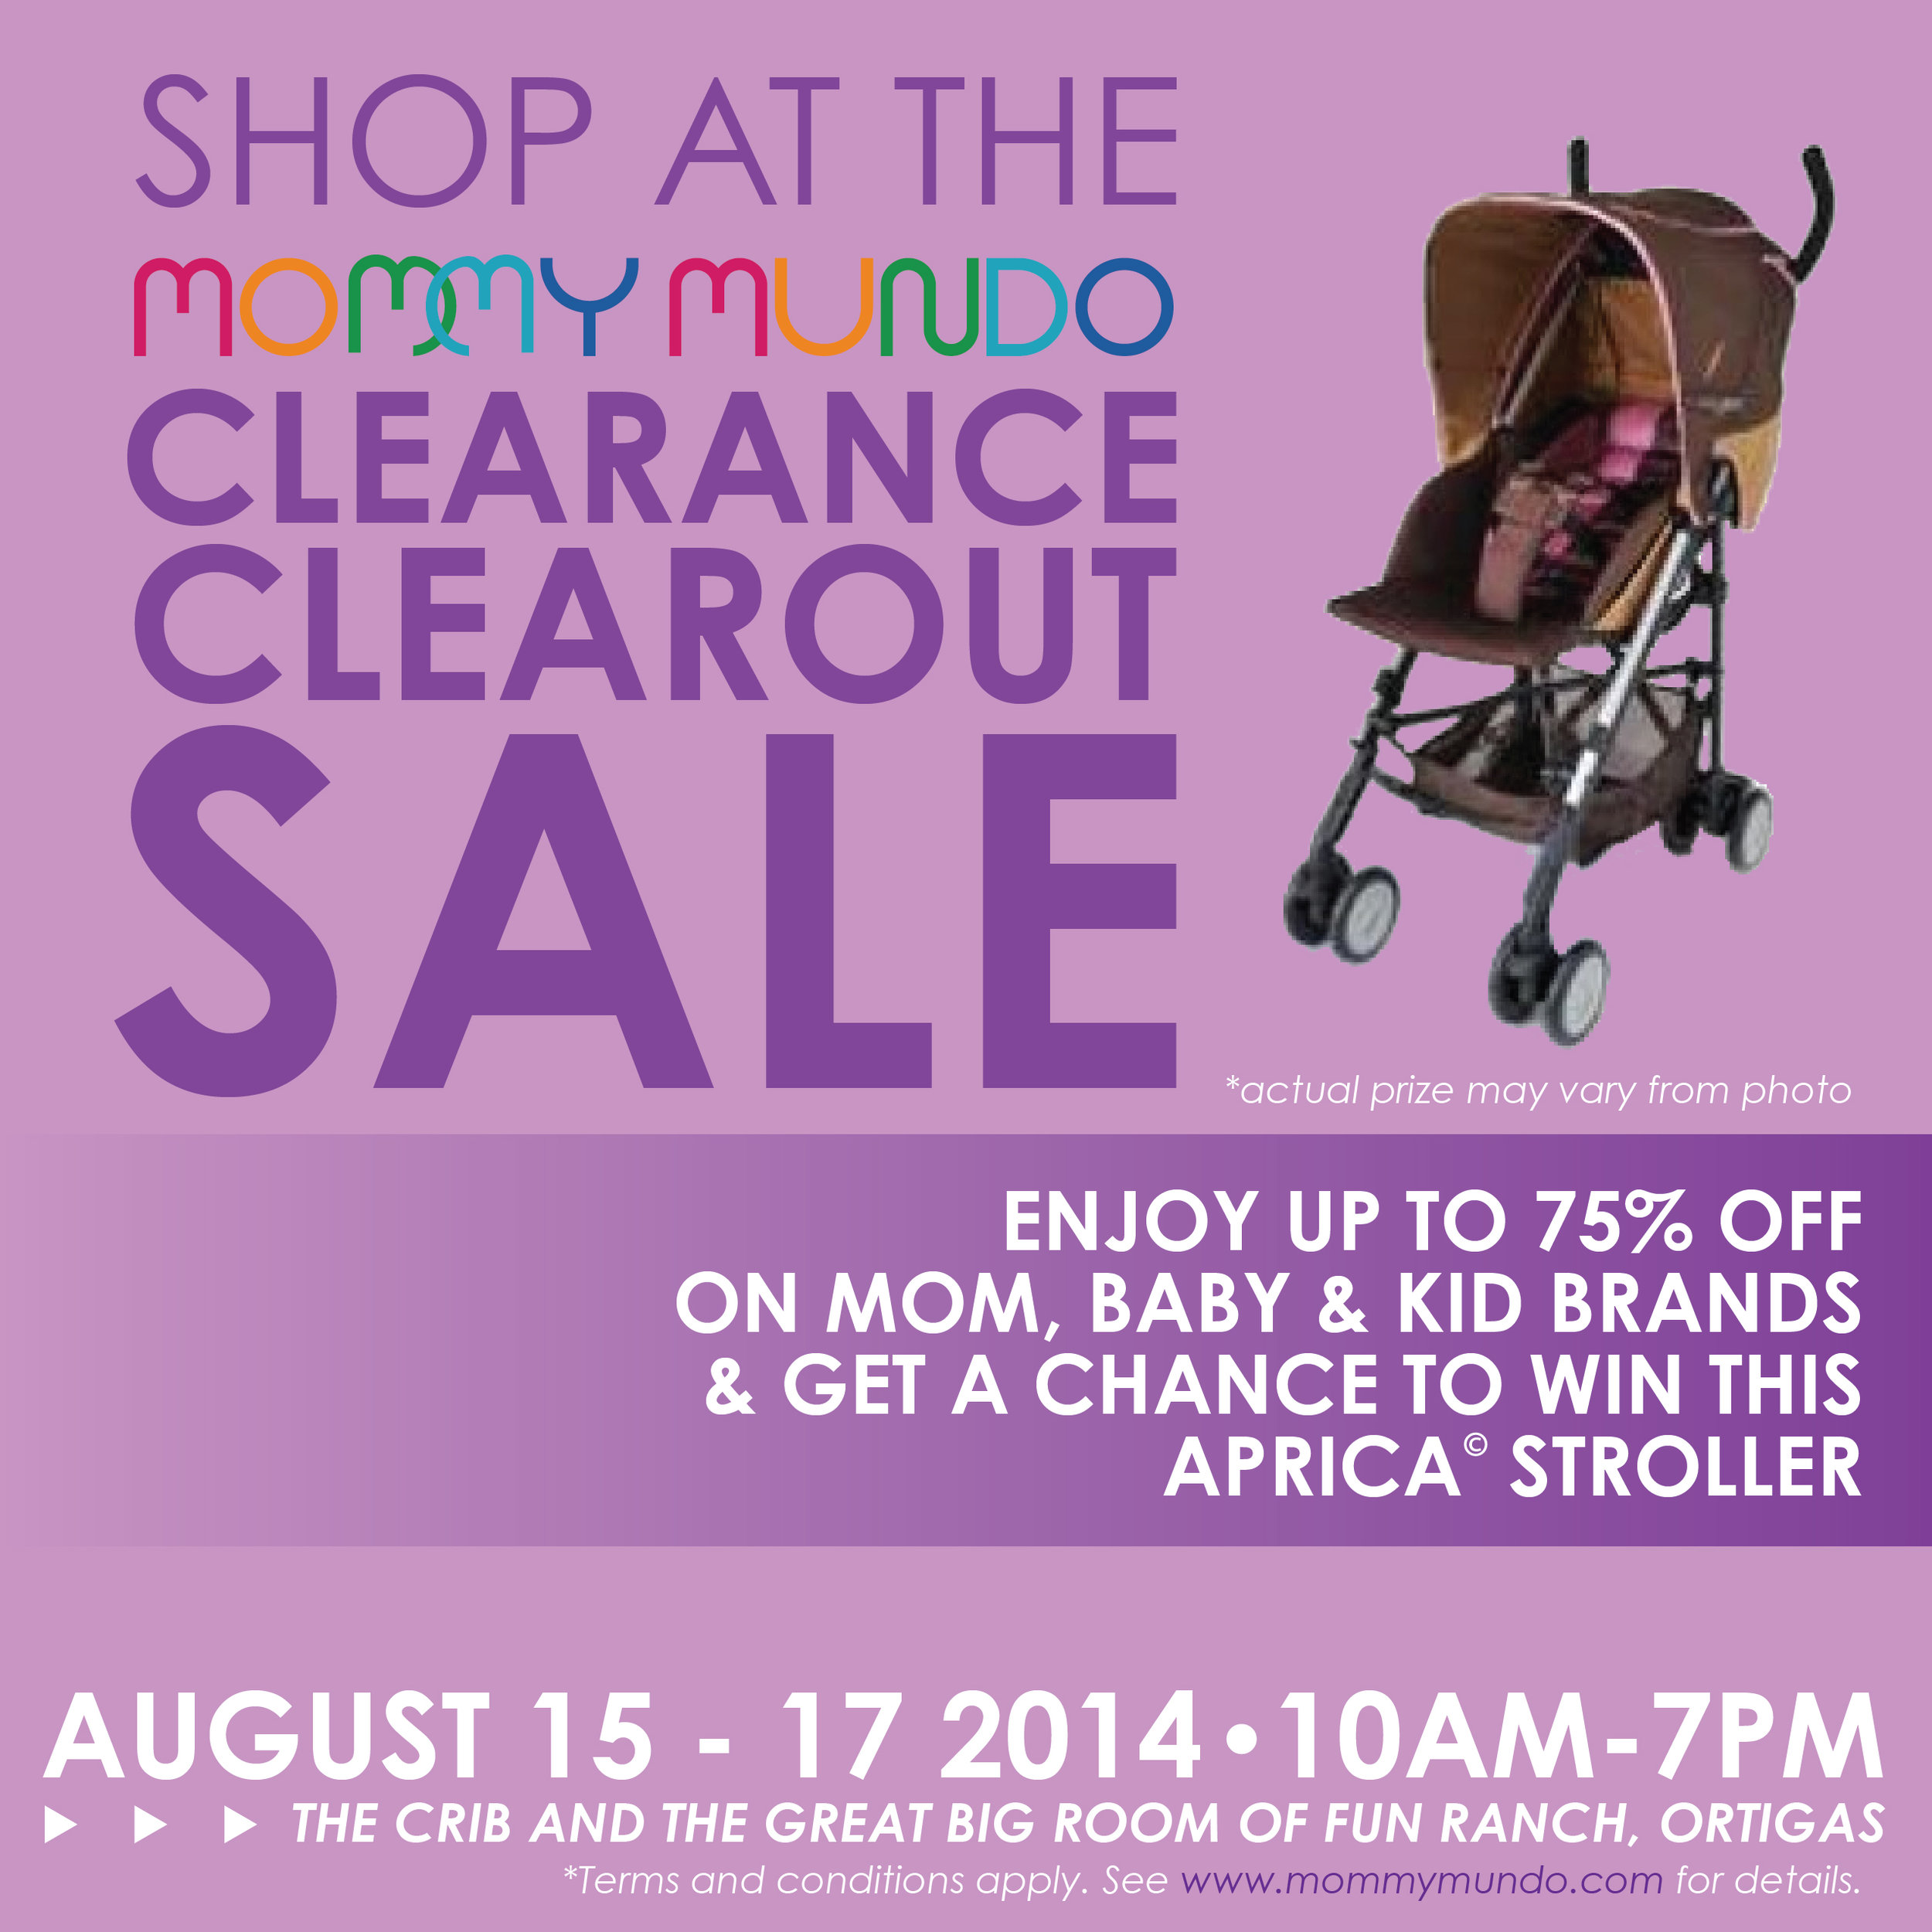 Mommy Mundo Clearance Clearout Stroller Contest